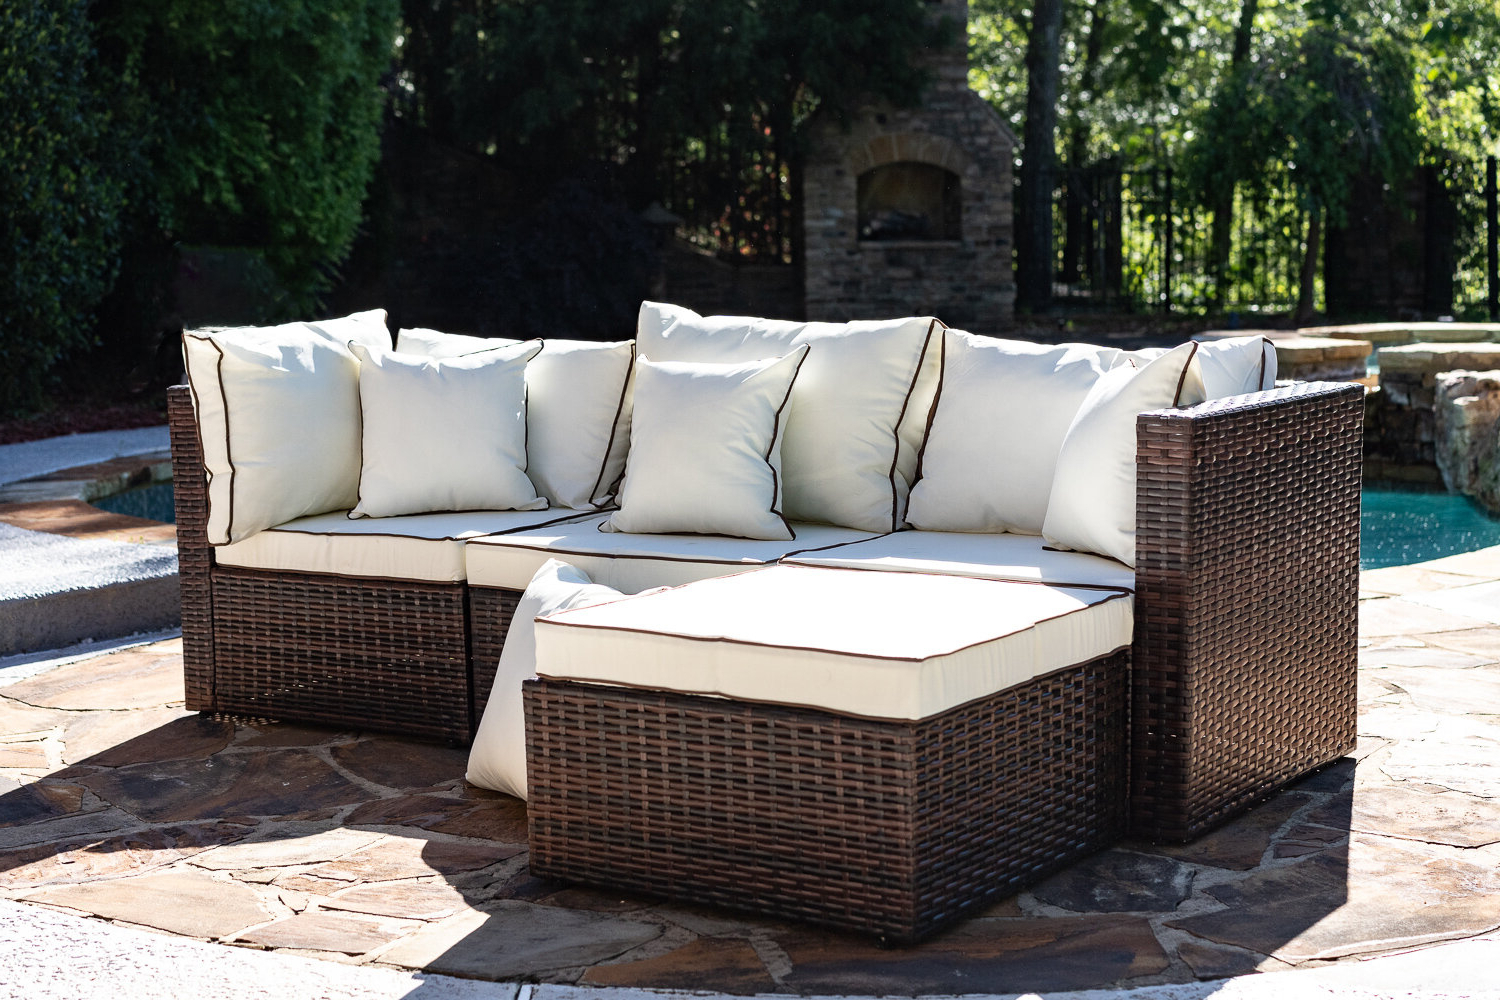 Fashionable Burruss Patio Sectional With Cushions With Regard To Katzer Patio Sofas With Cushions (View 7 of 20)